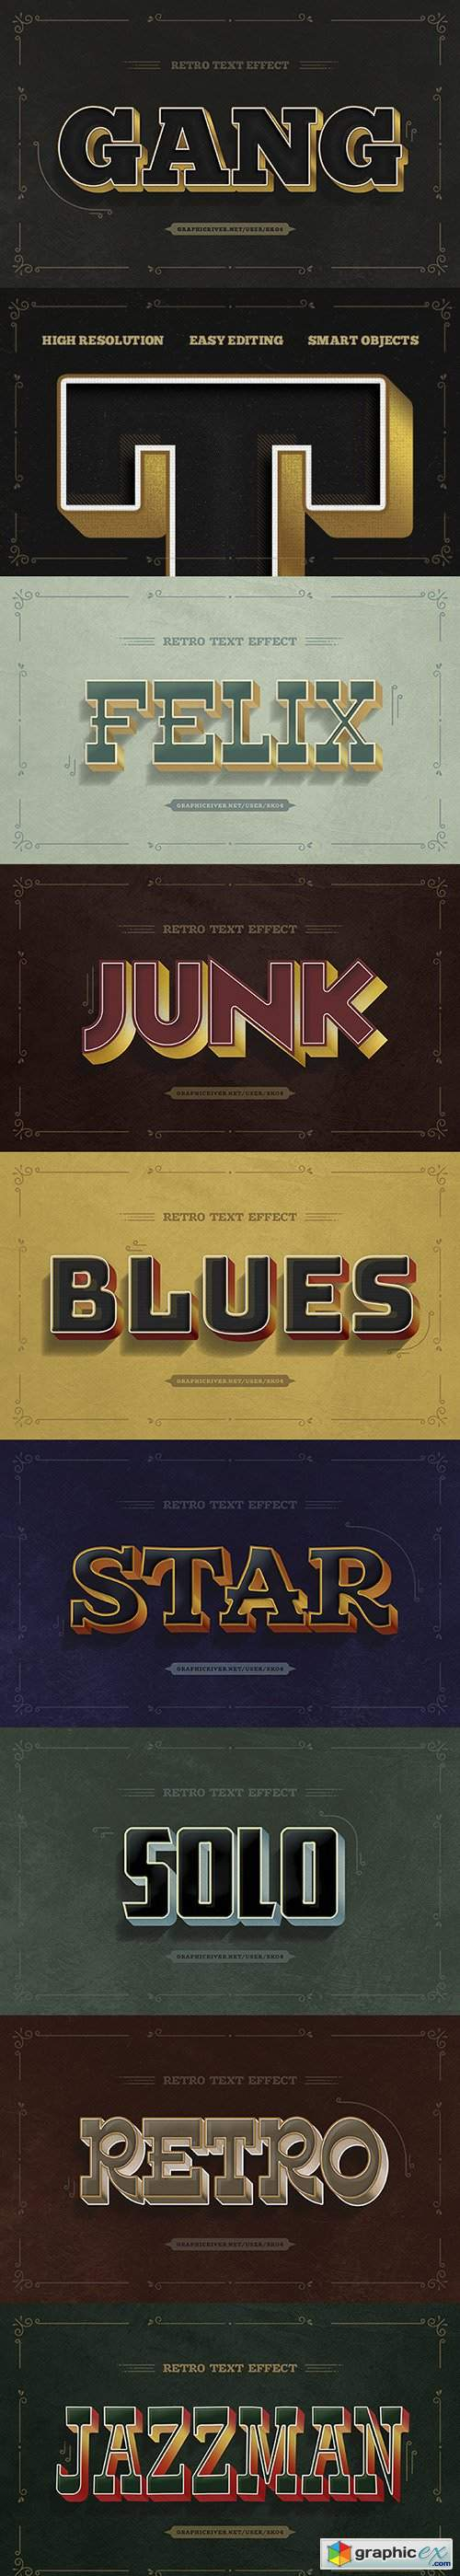 Retro Text Effects - 10 PSD